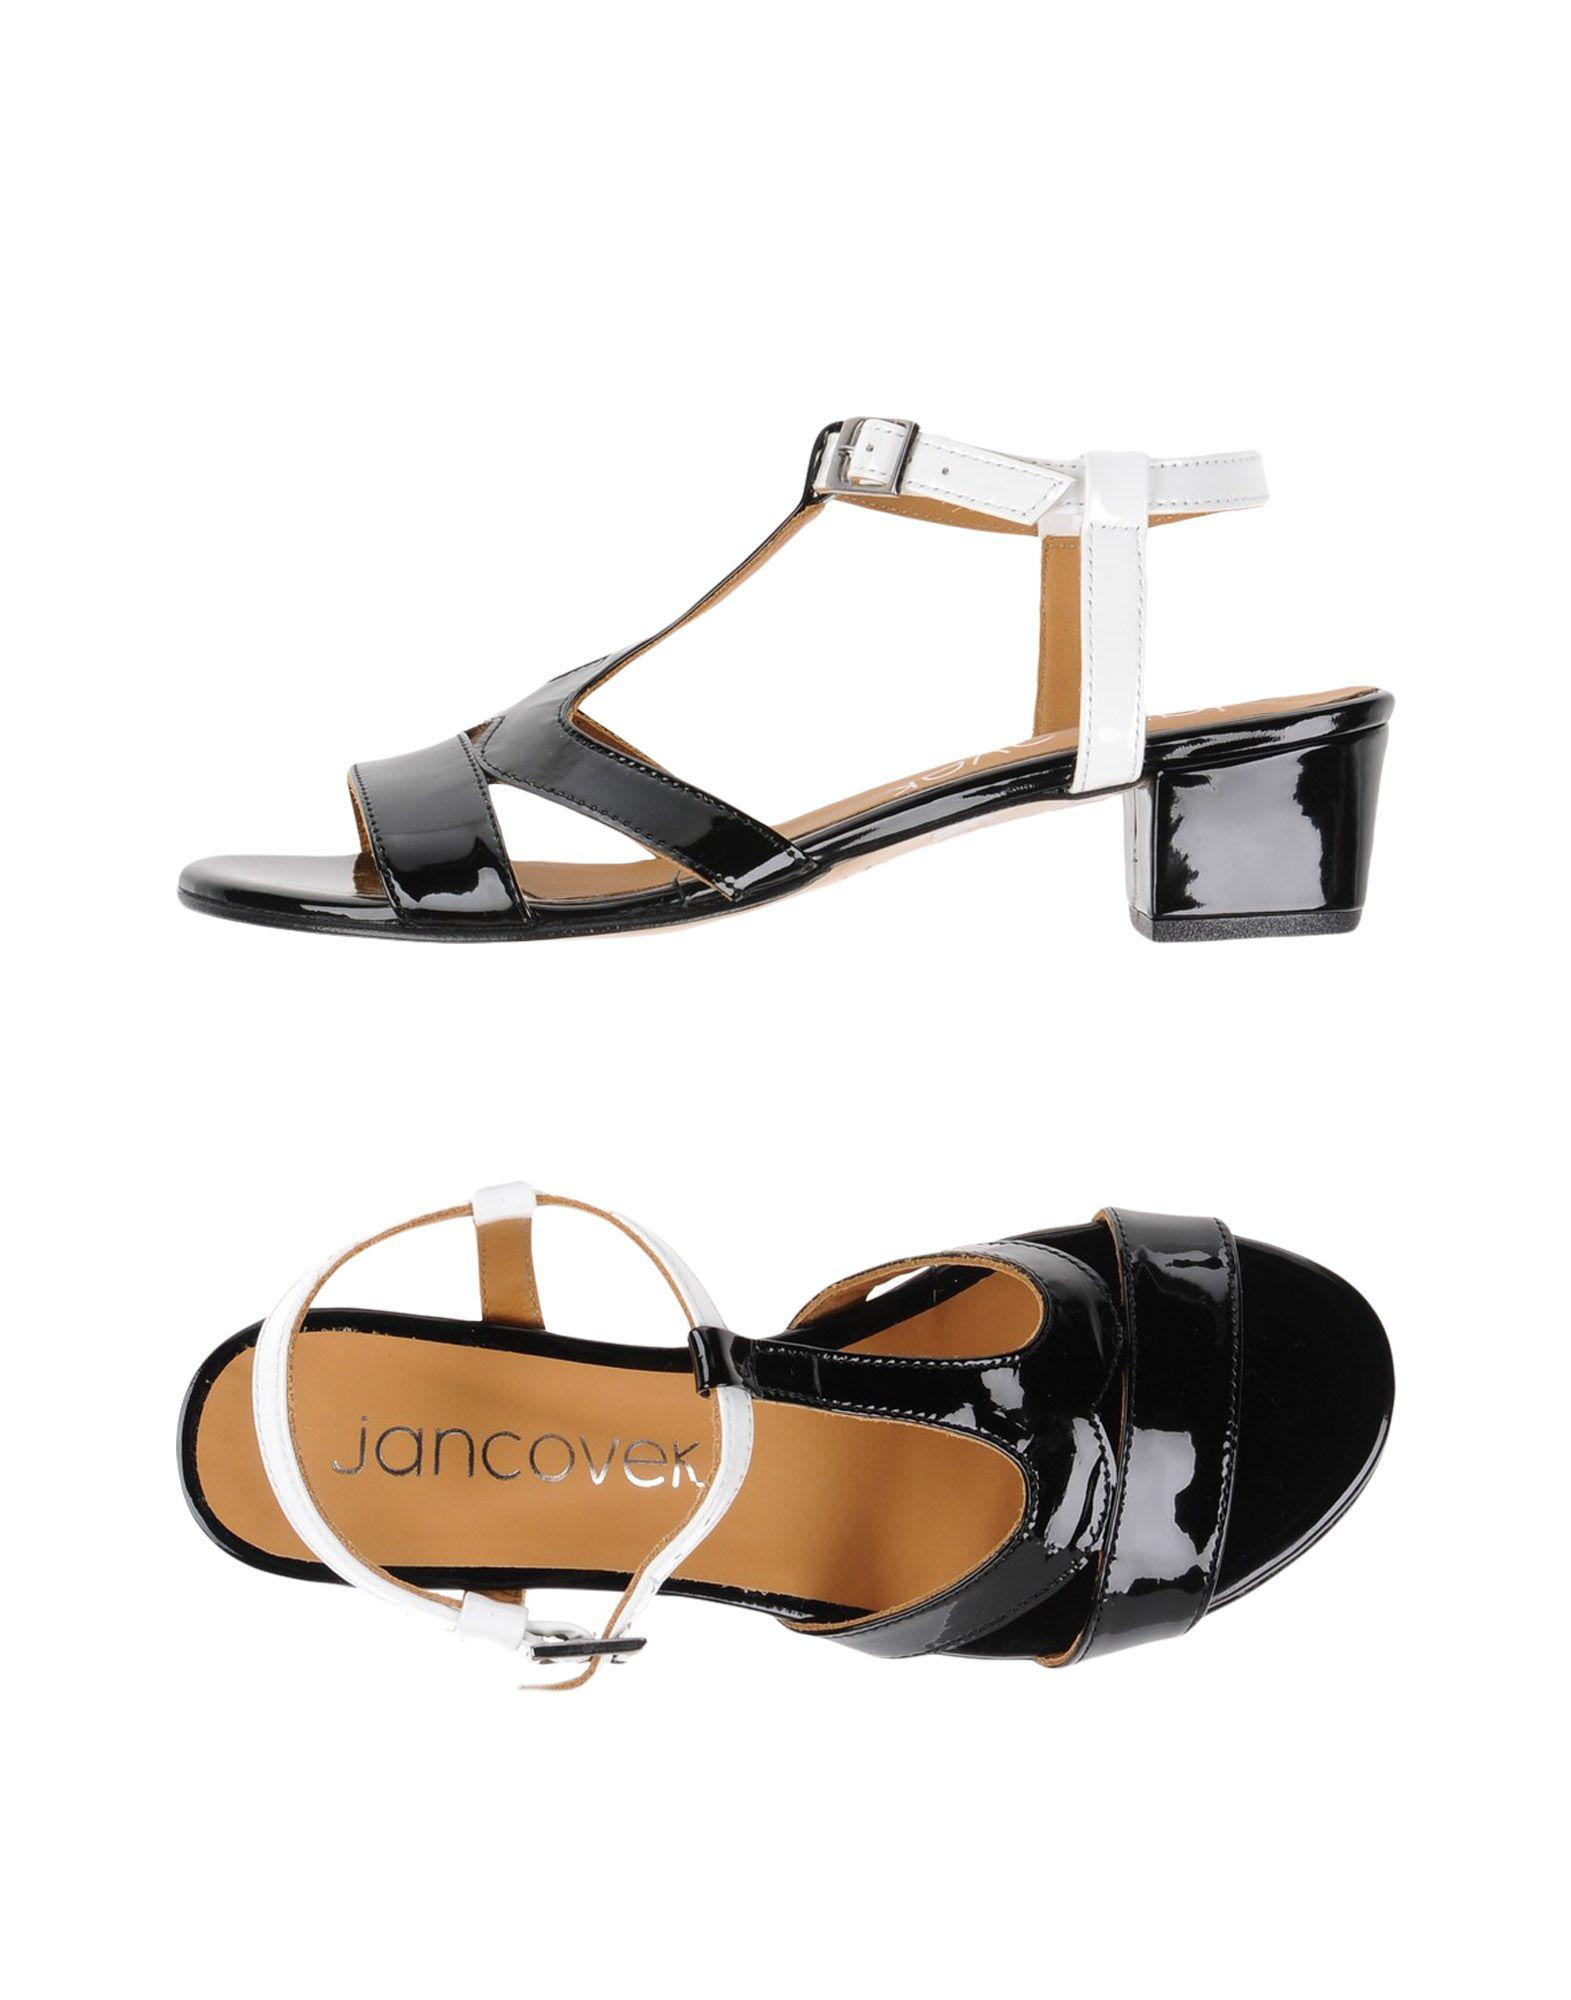 JANCOVEK Sandals factory outlet sale online free shipping pay with visa OmP7iGGfcw